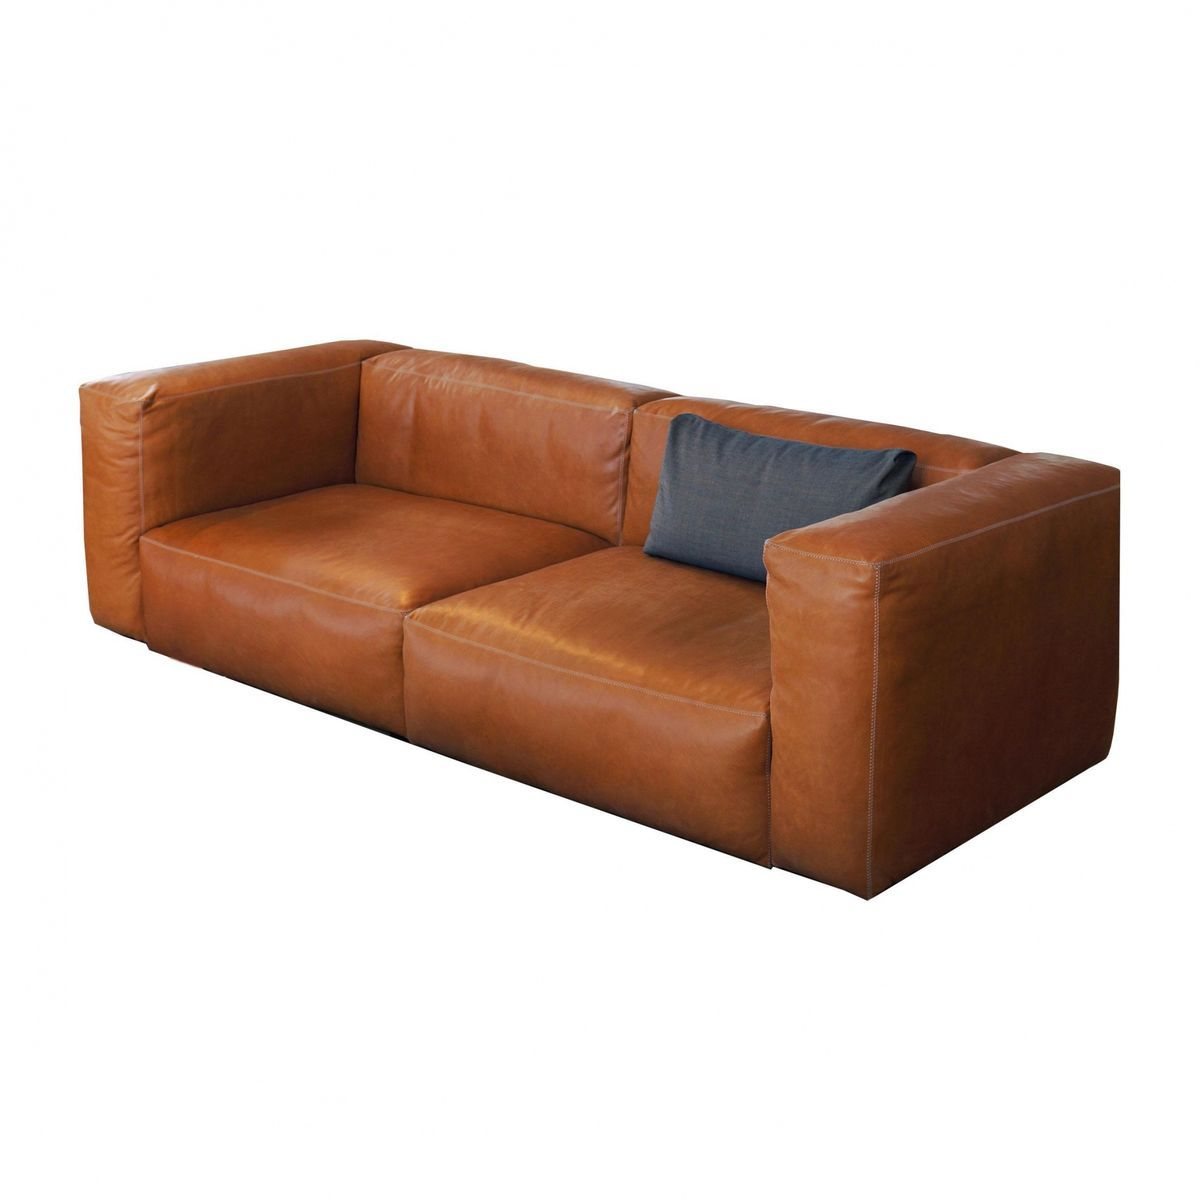 Bettdecken Nach Mass Mags Soft 2 5 Sitzer Sofa Leder In 2019 Möbel Sofa Furniture